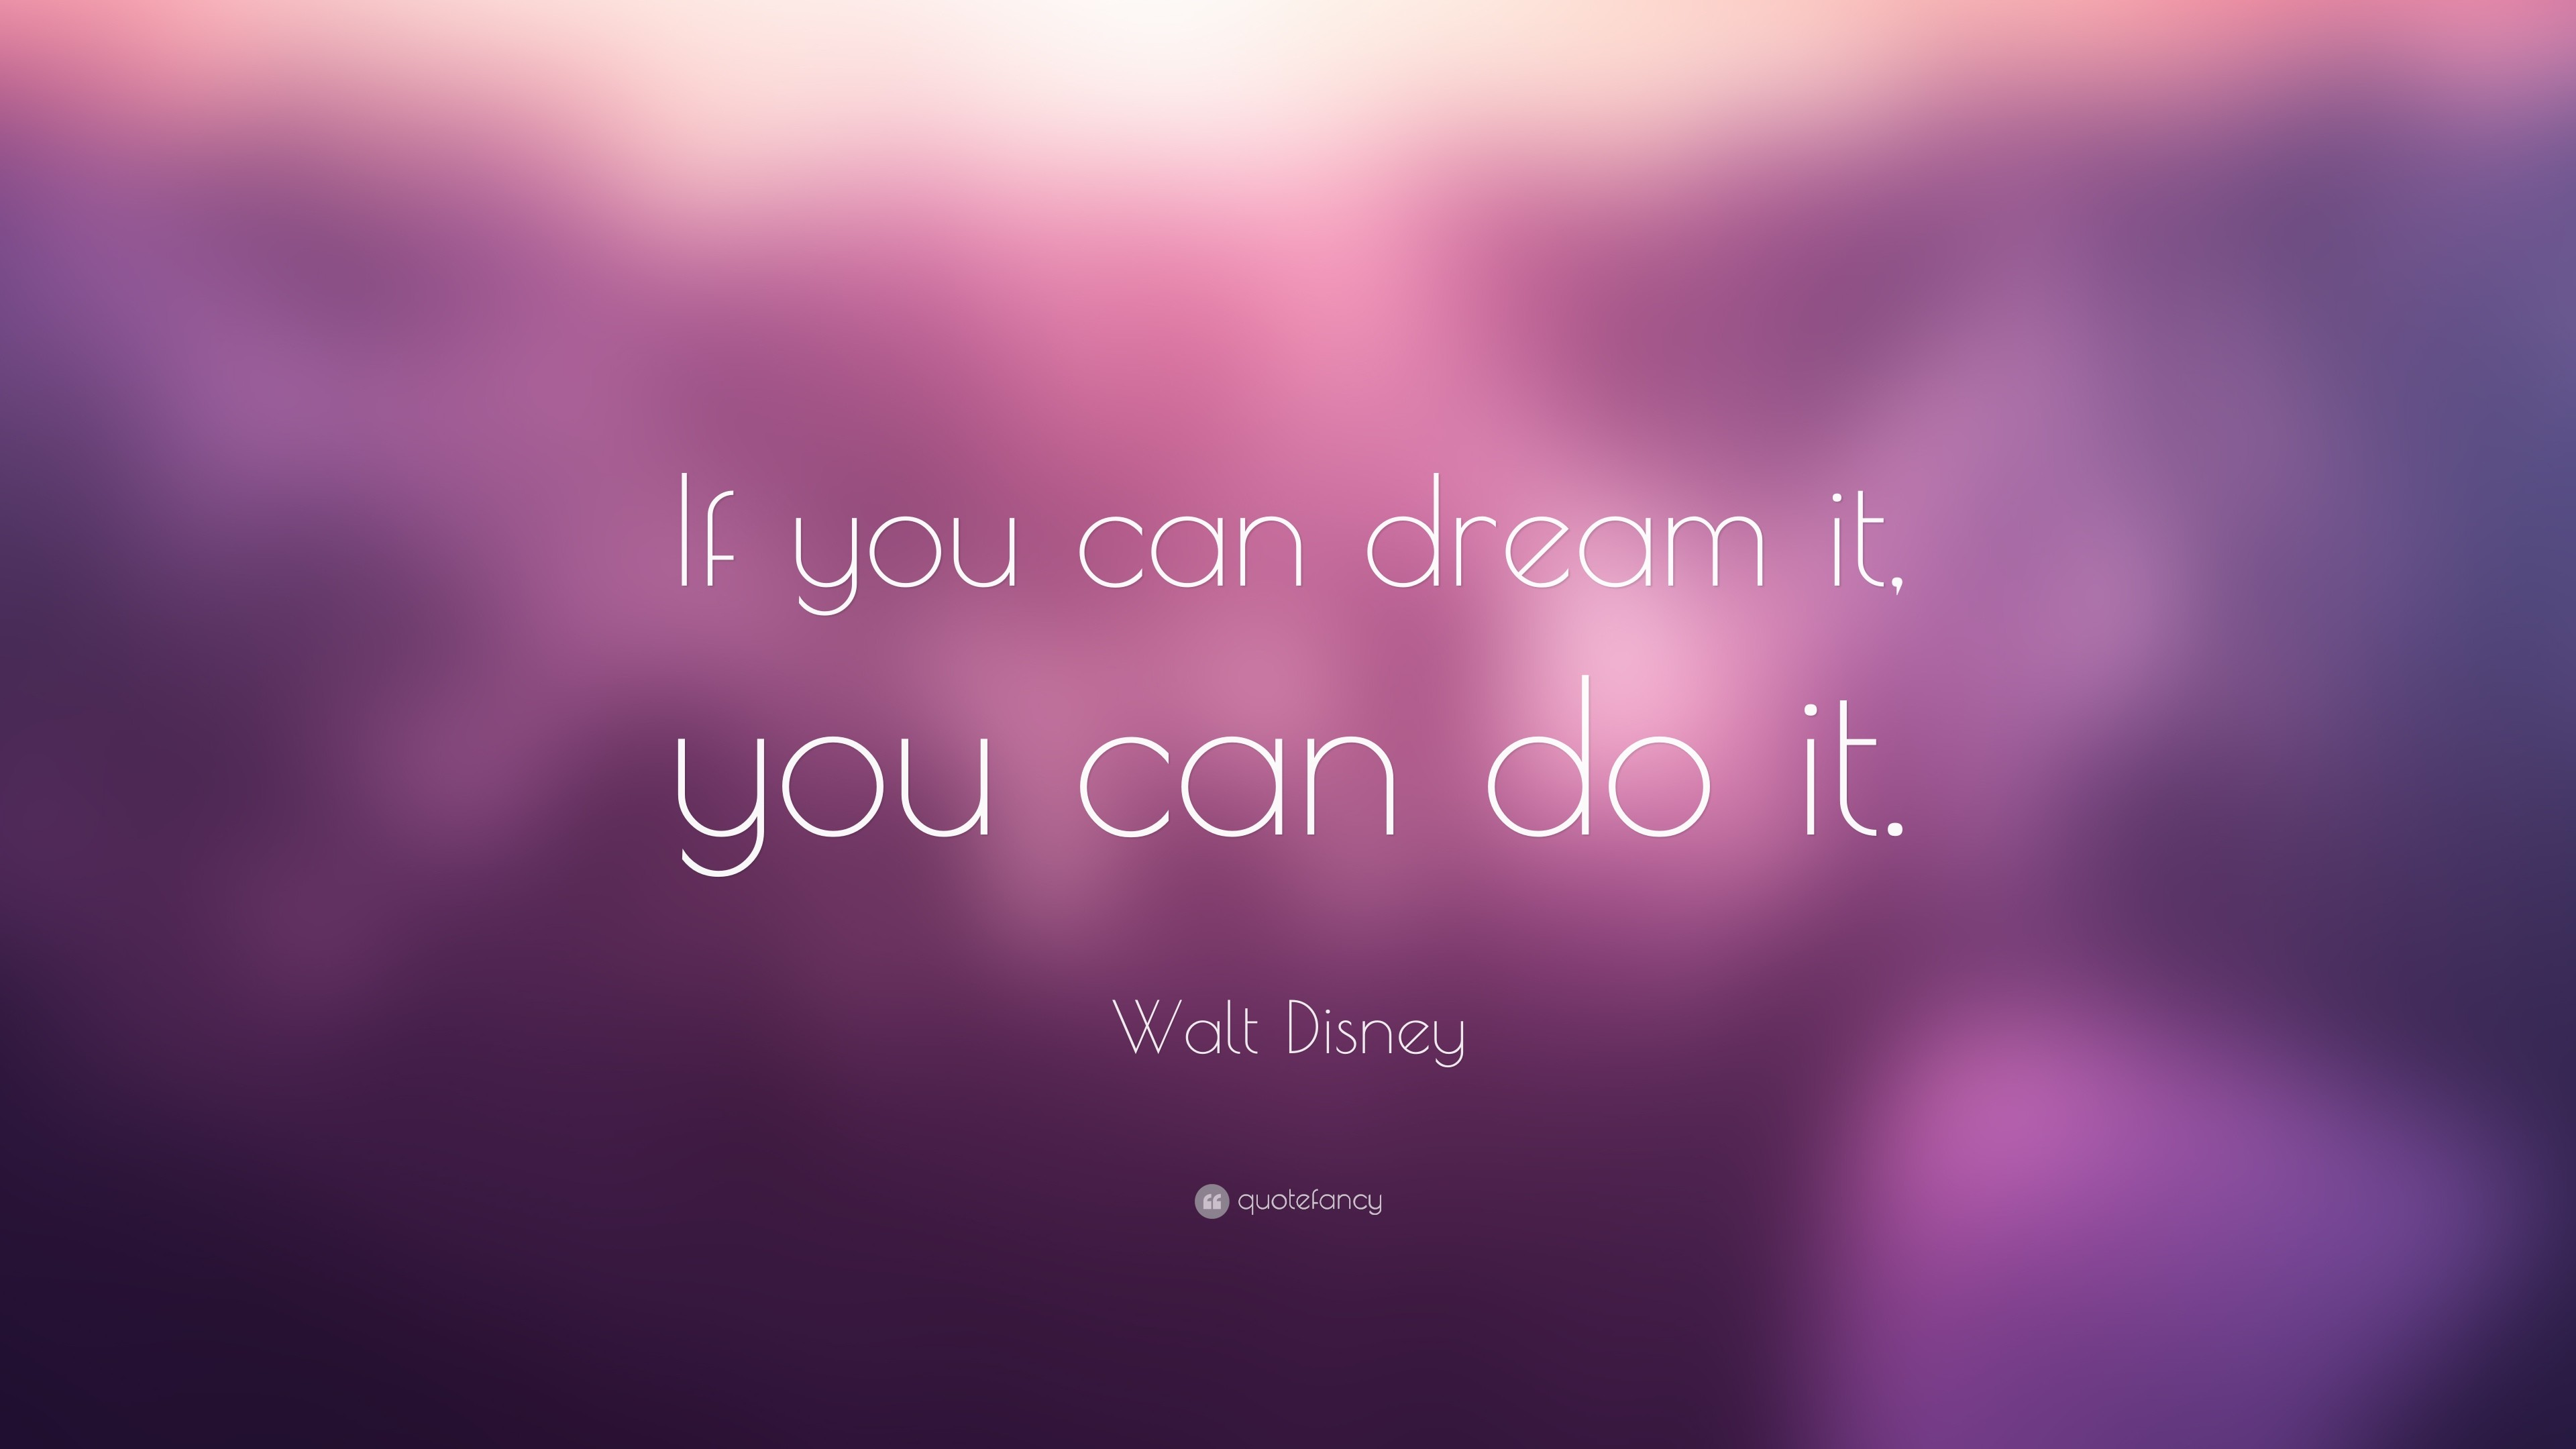 Disney quotes desktop wallpaper 66 images for Where can i get wallpaper